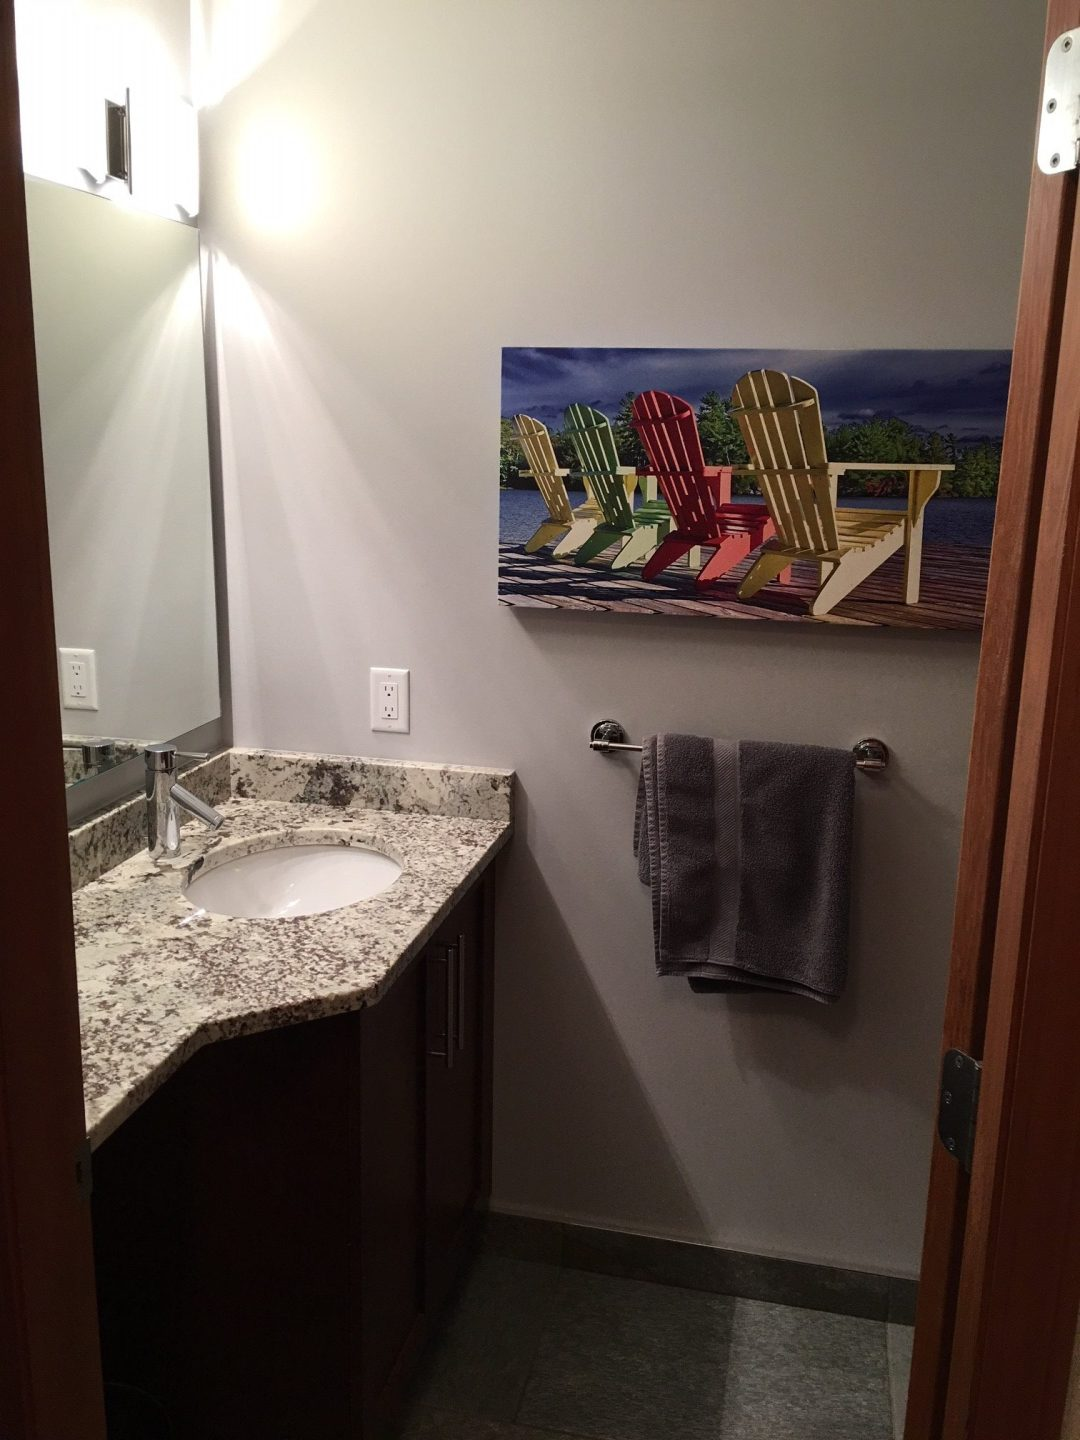 3 Bedroom Whistler Village Accommodation Guest Bathroom